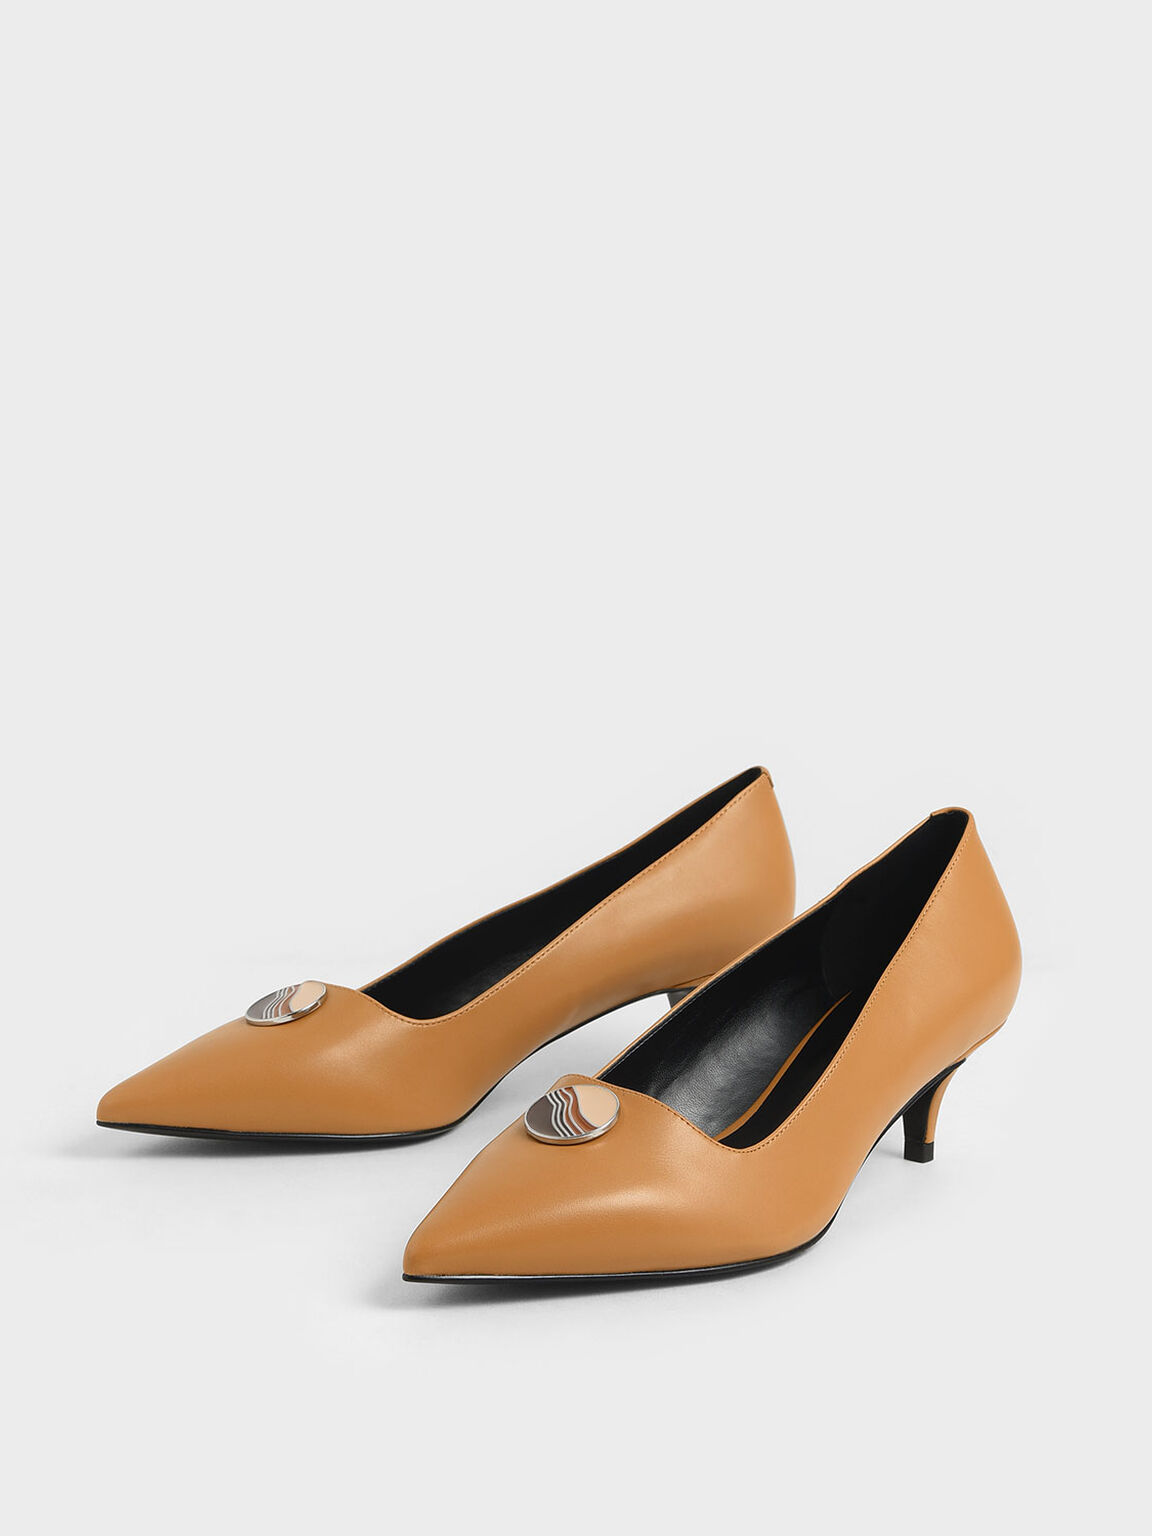 Striped Button Detail Kitten Heel Pumps, Caramel, hi-res